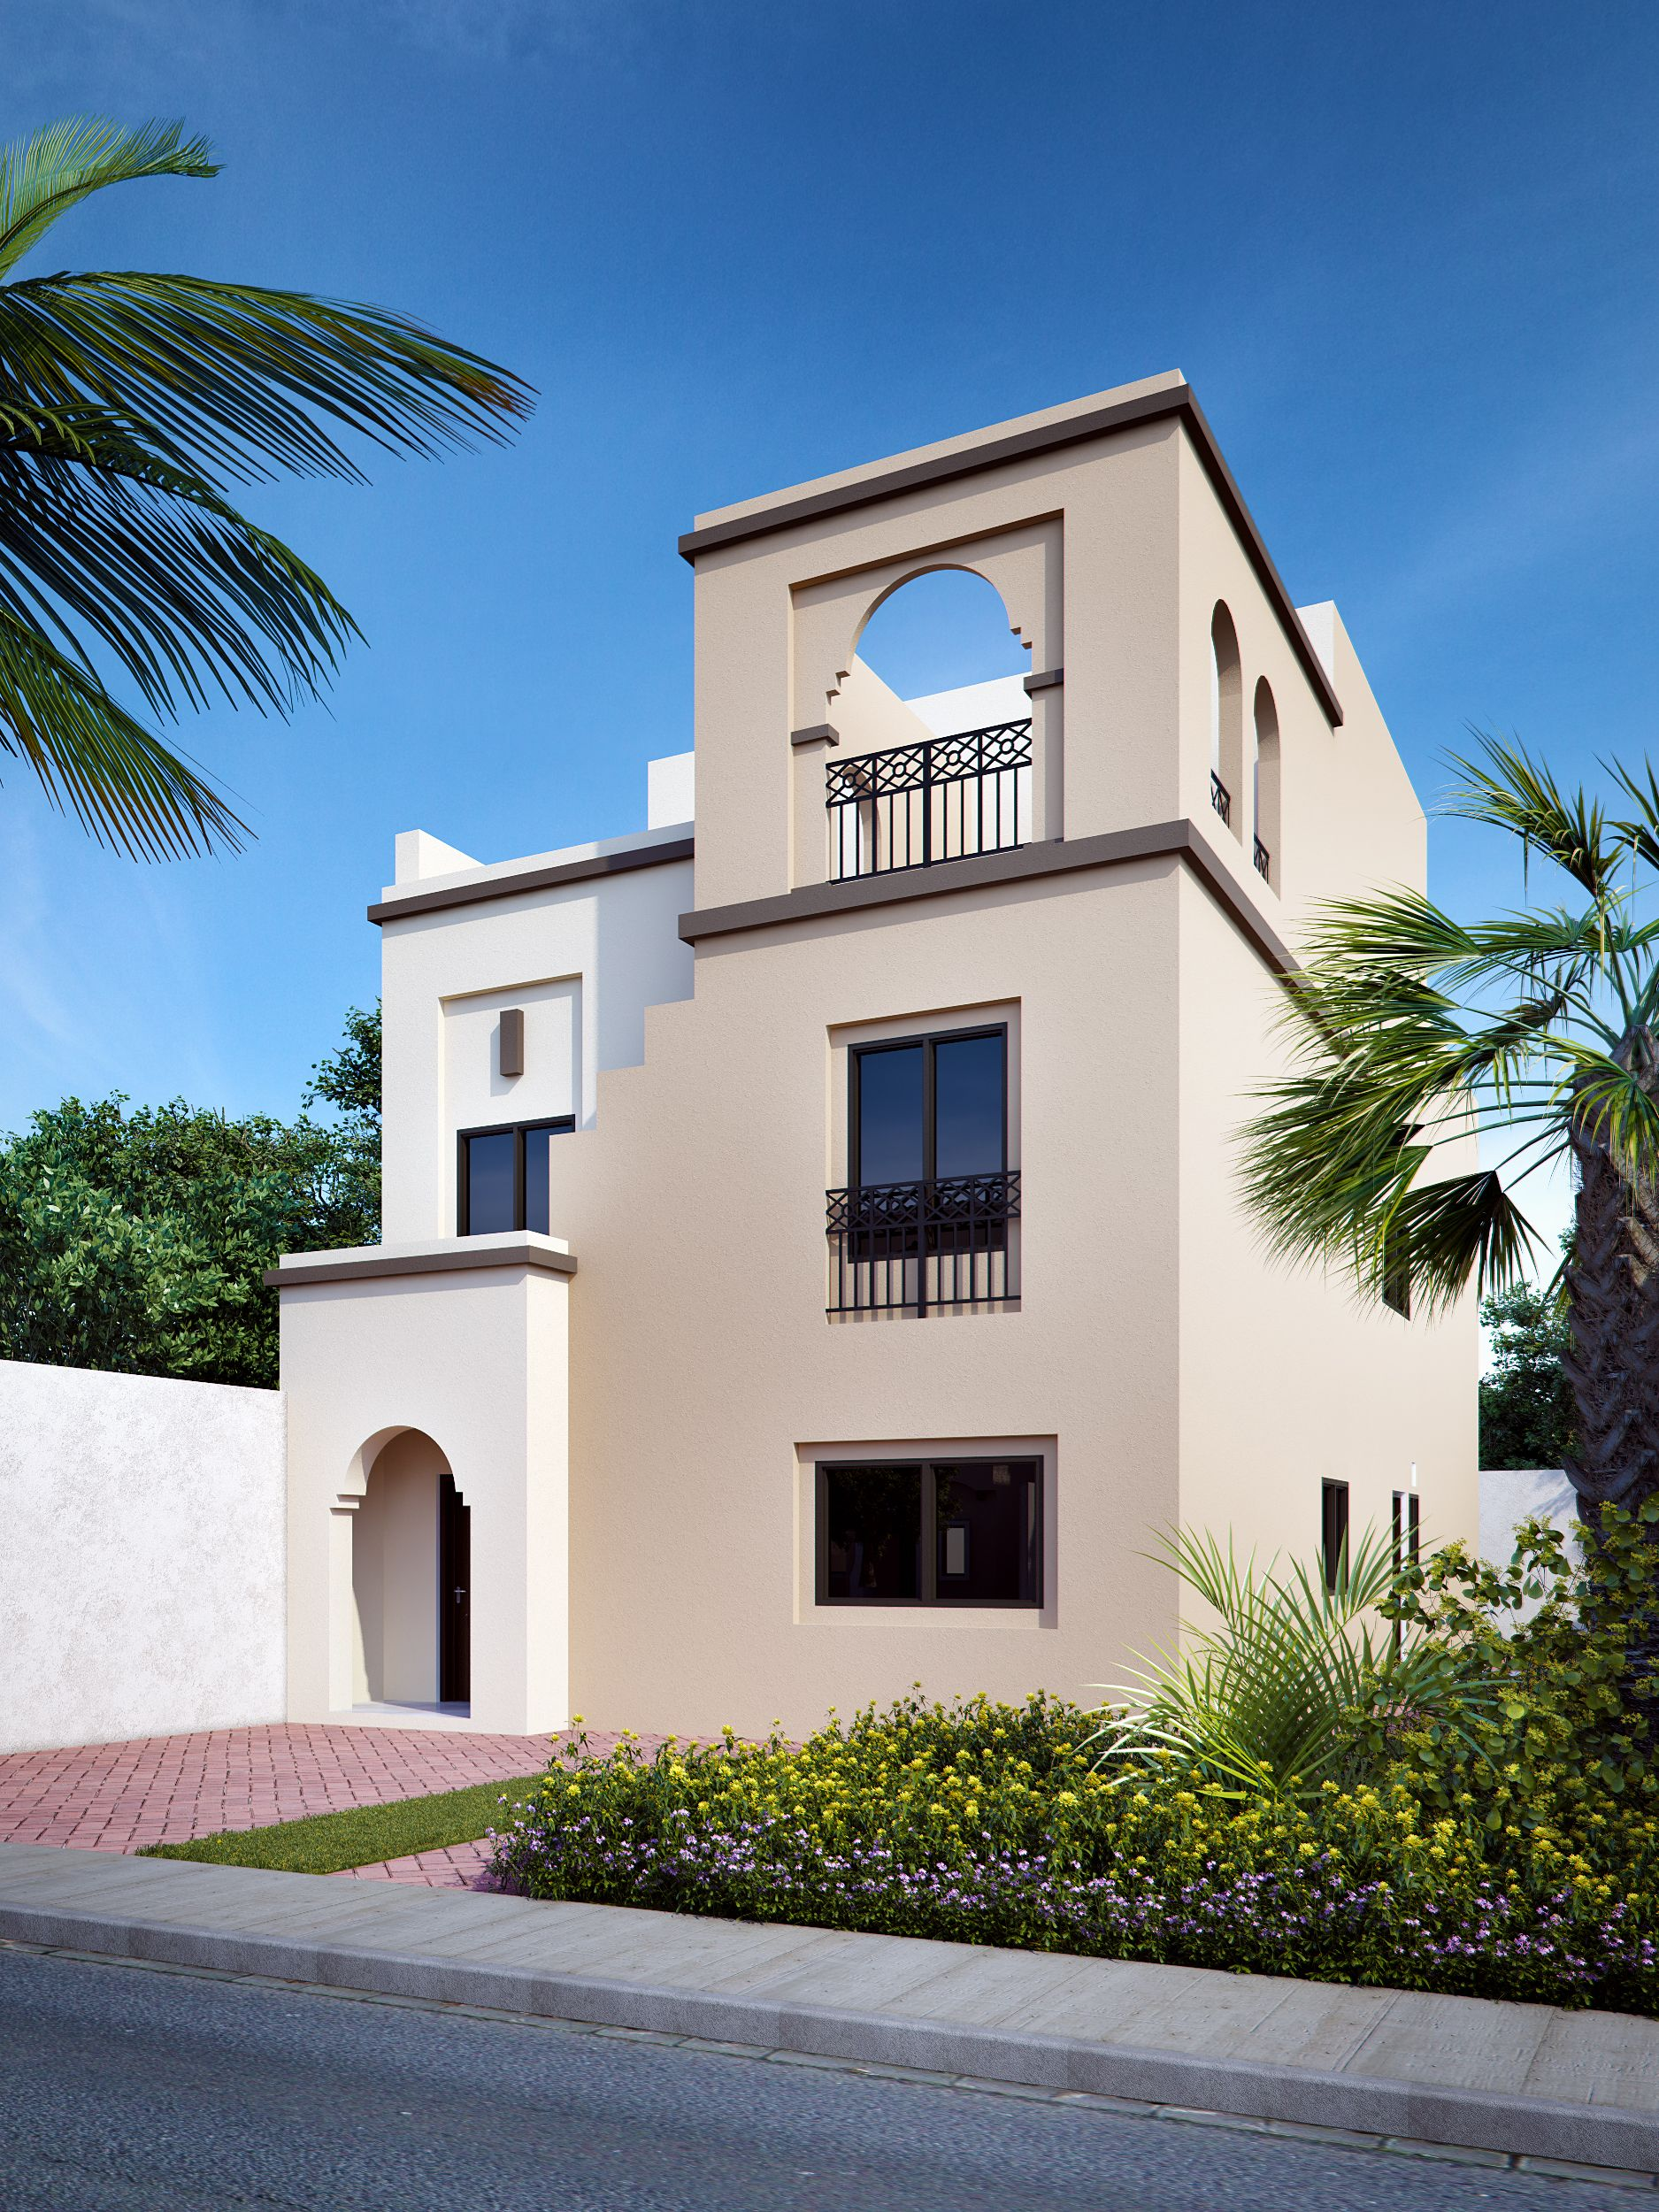 Proposed 3D photo rendering of Arabic style villa